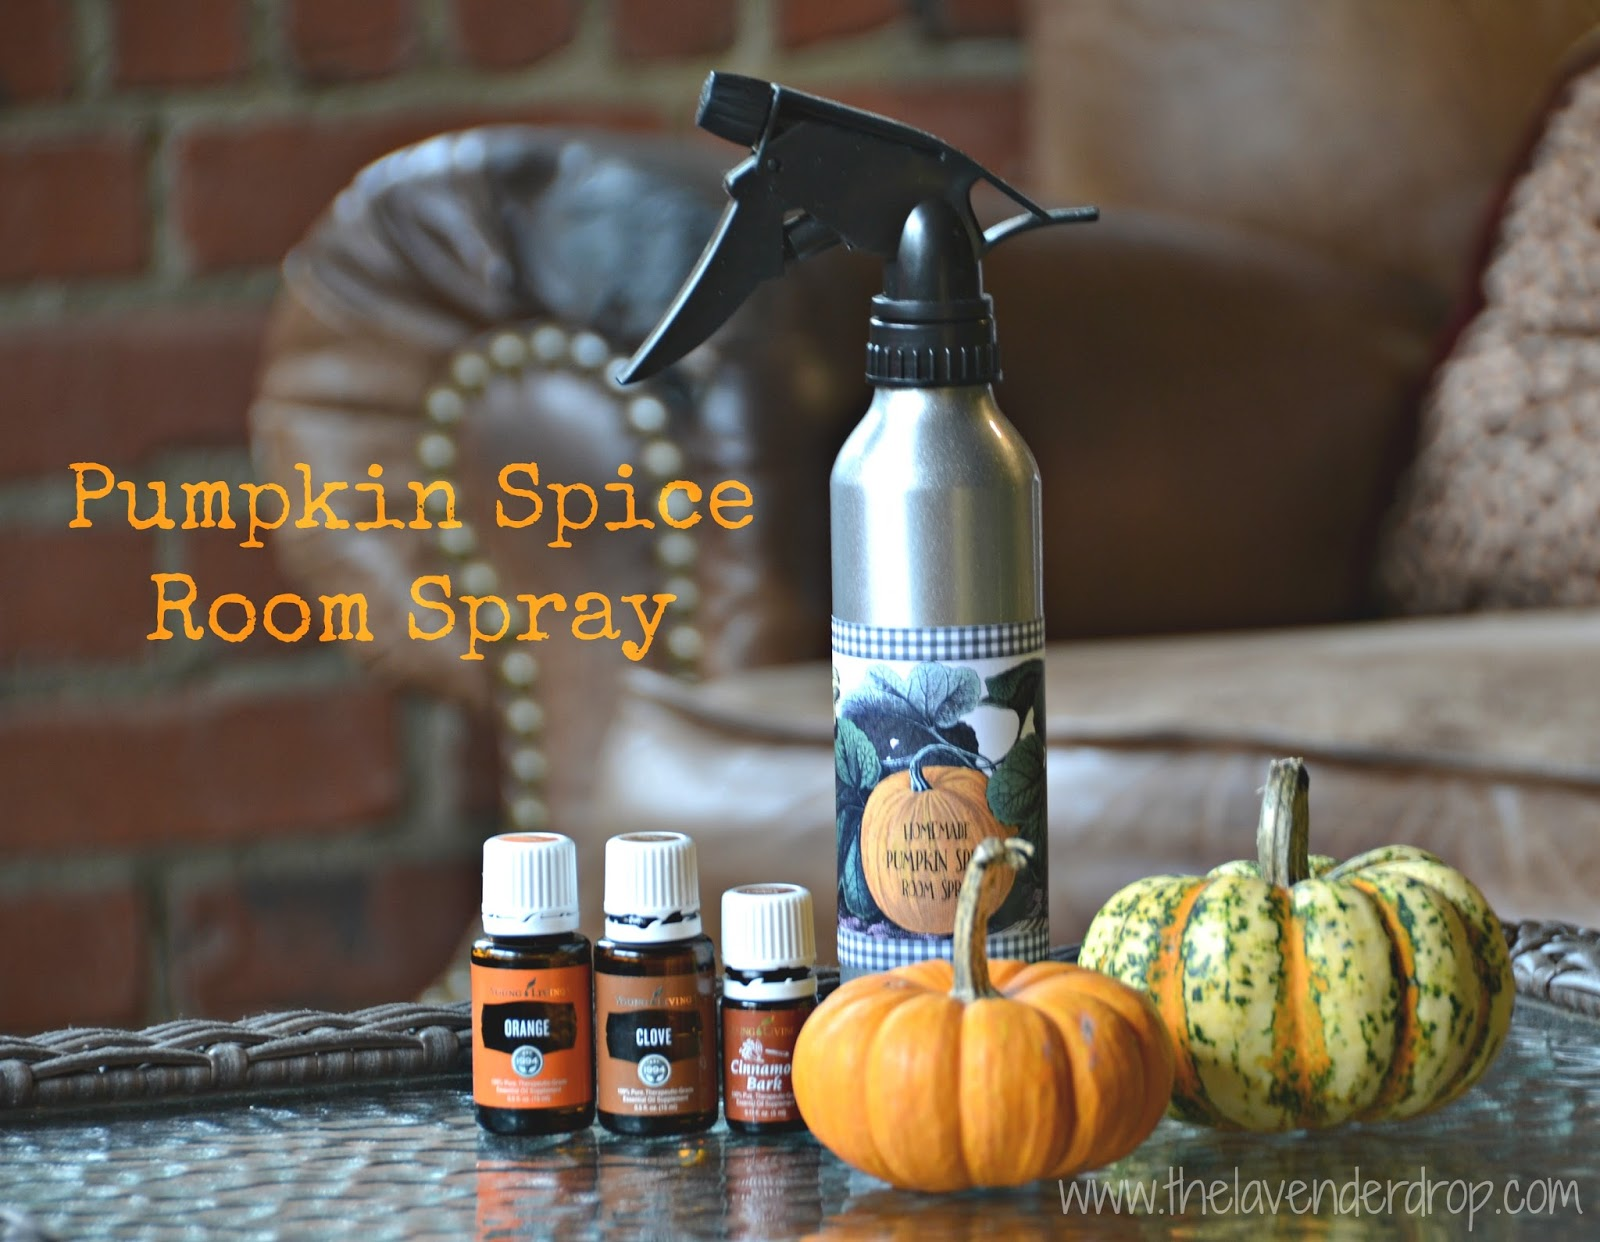 The lavender drop essential oils and all things fall for How to make pumpkin spice essential oil